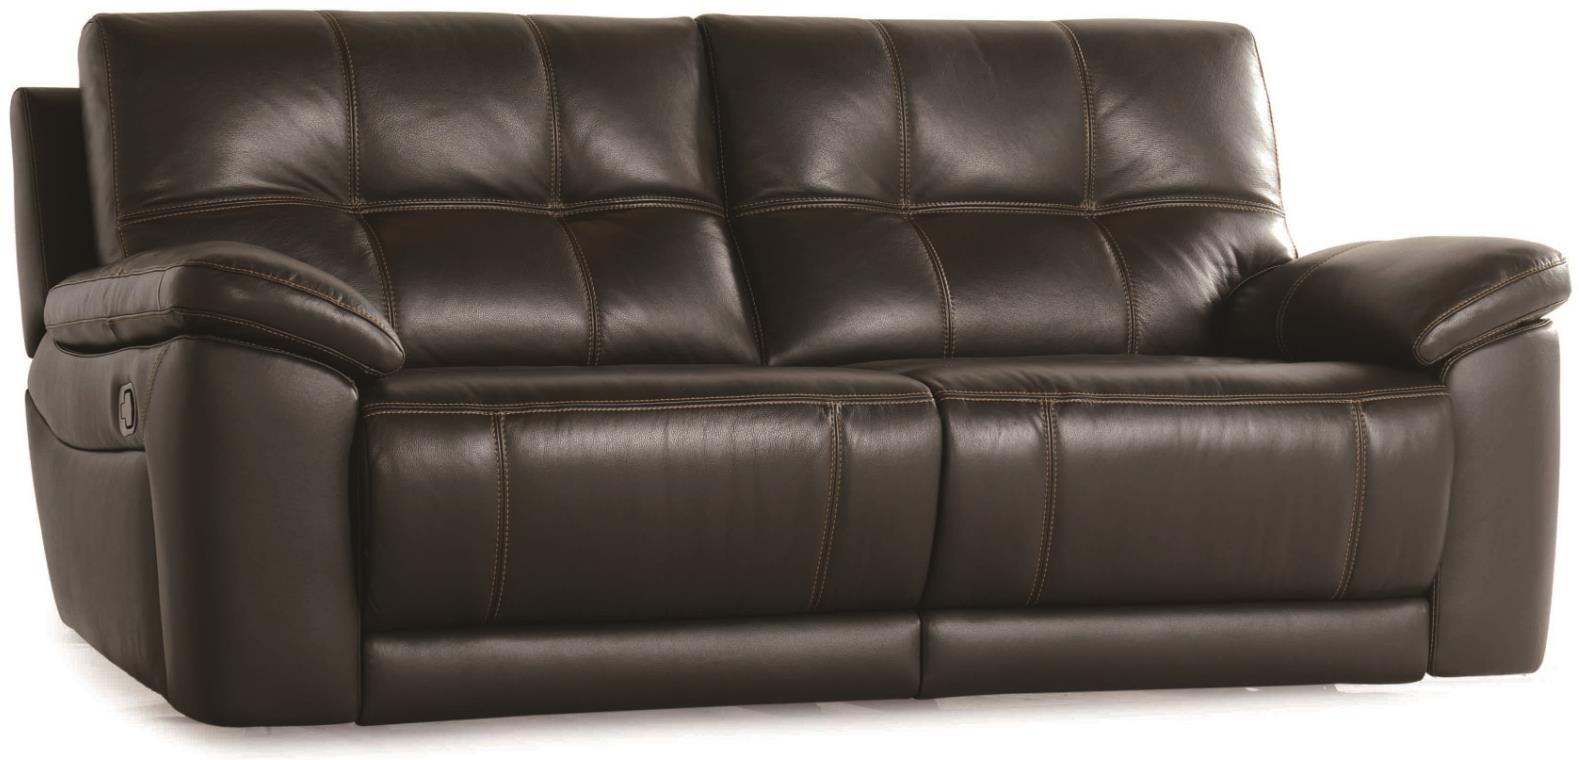 30162 Power Reclining Sofa by Violino at Furniture Superstore - Rochester, MN